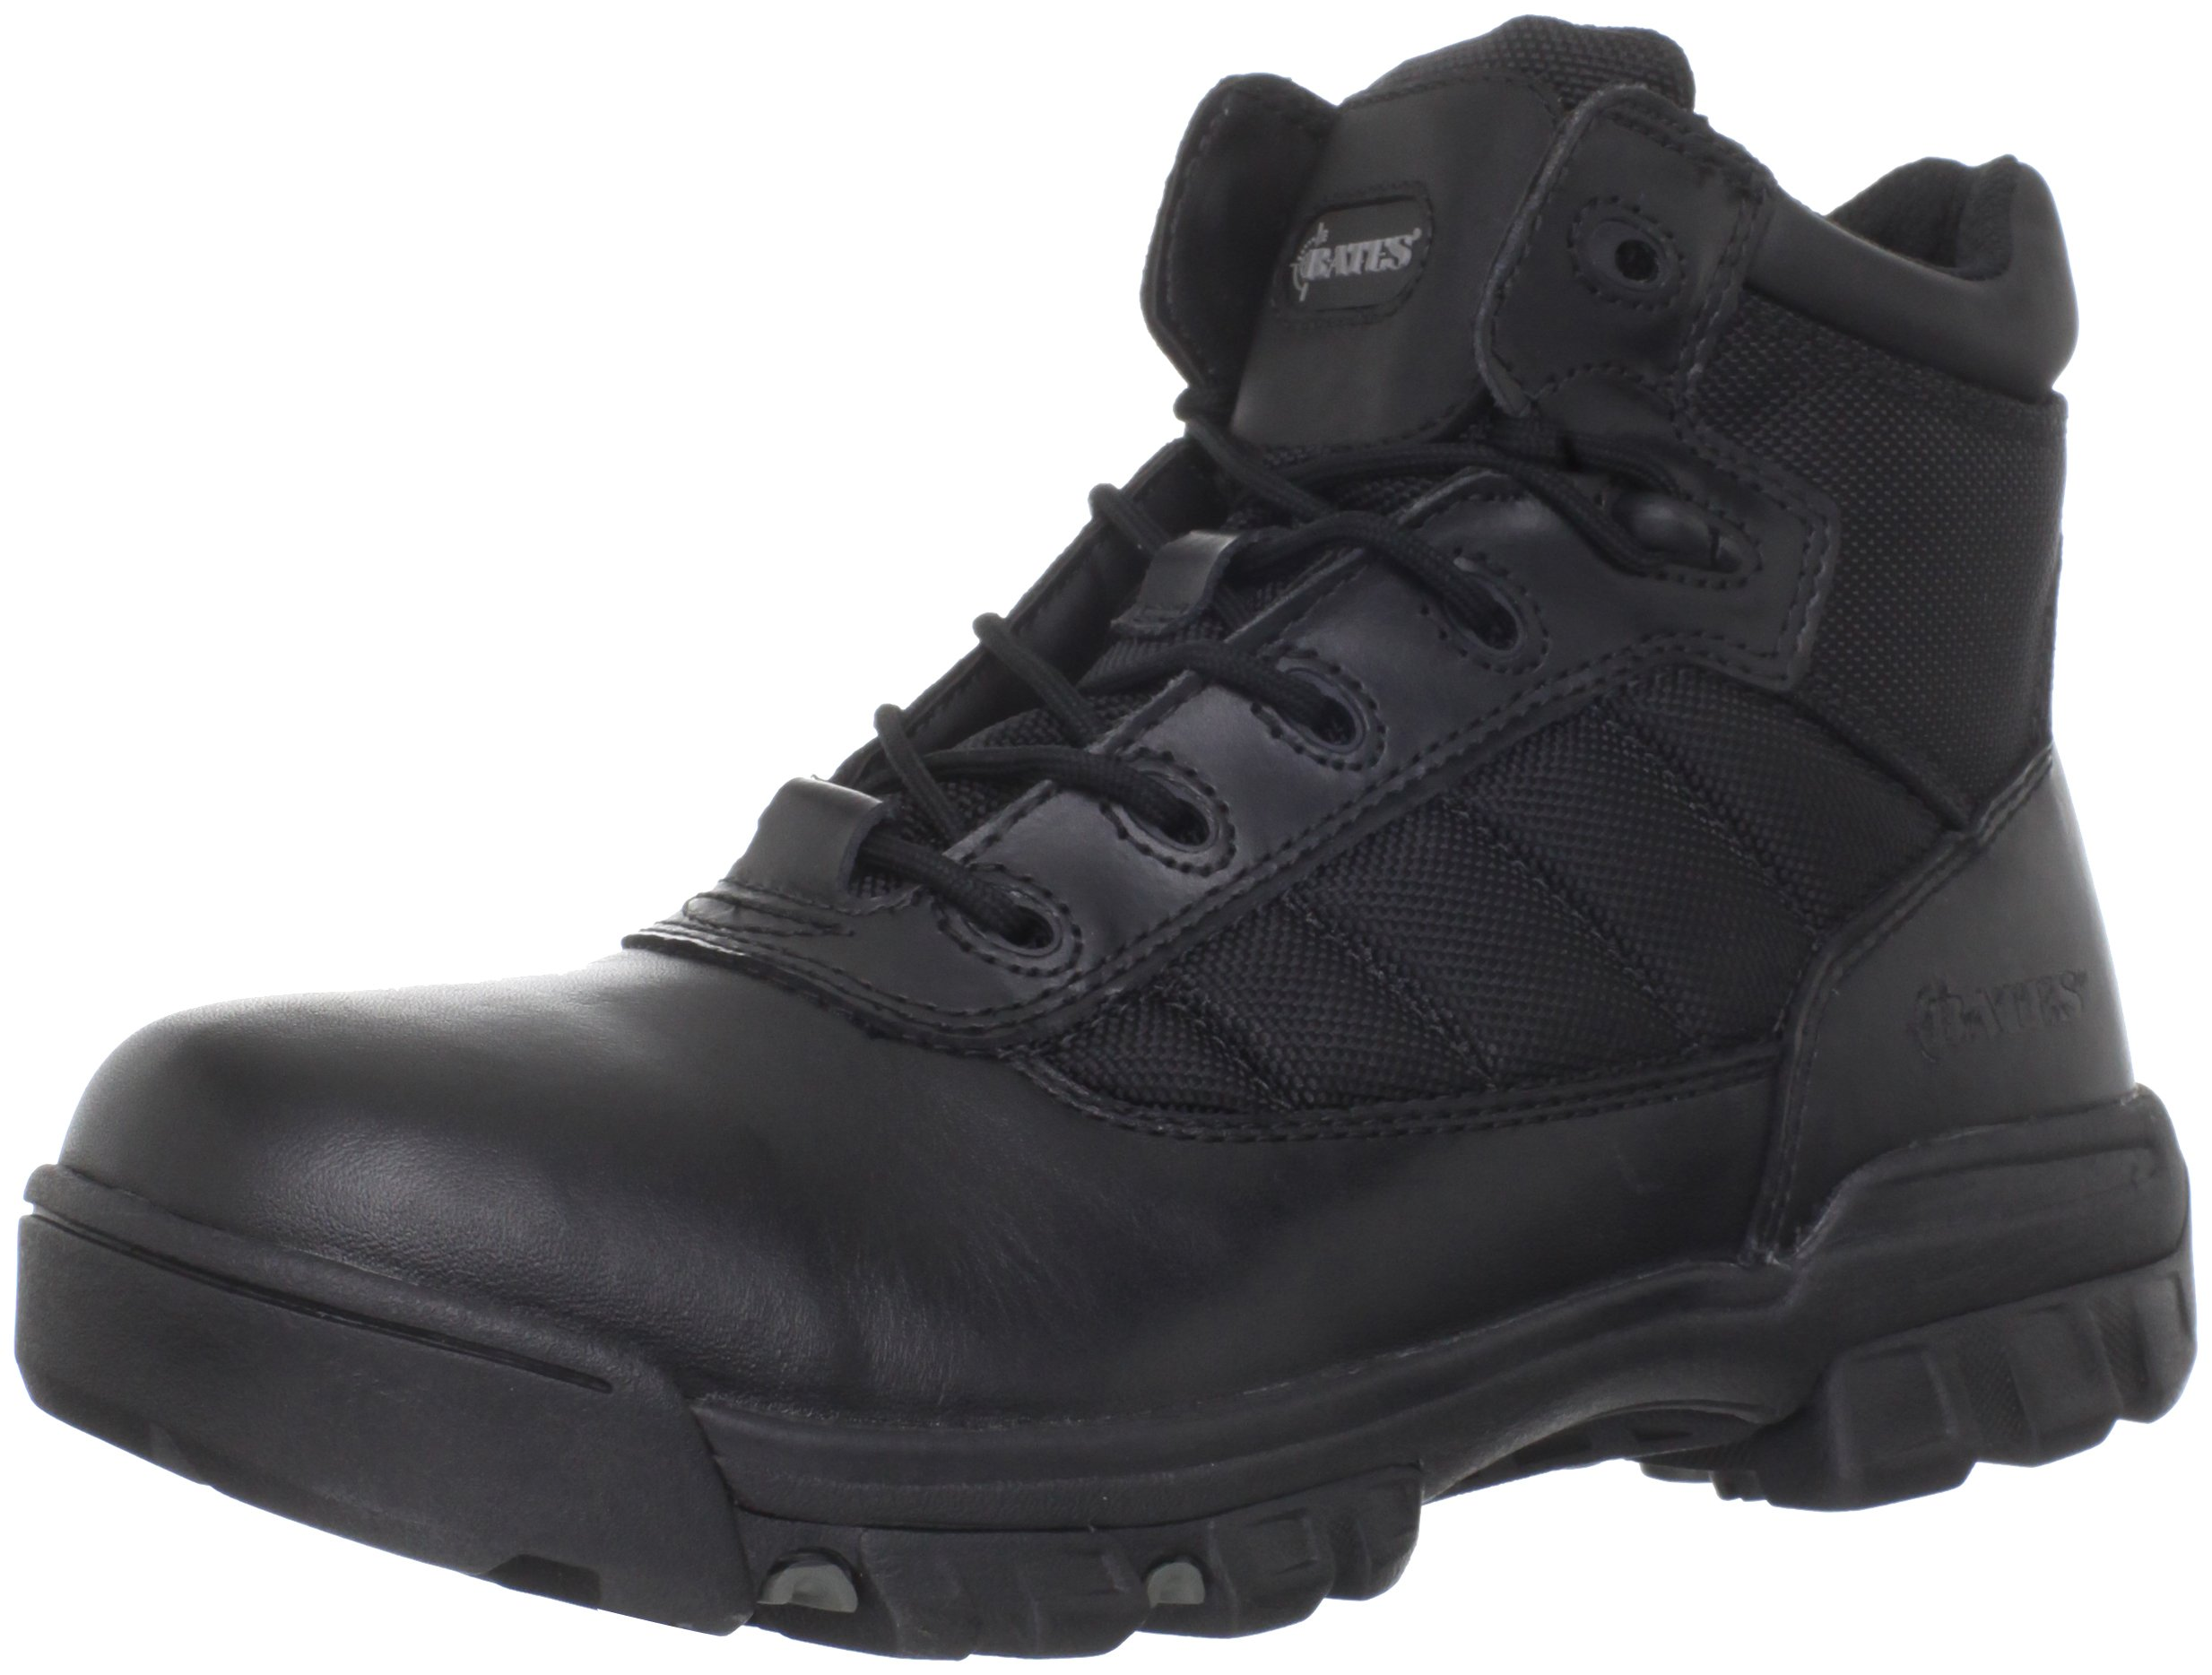 Bates Men's Enforcer 5 Inch Nylon Leather Uniform Boot, Black, 9 M US